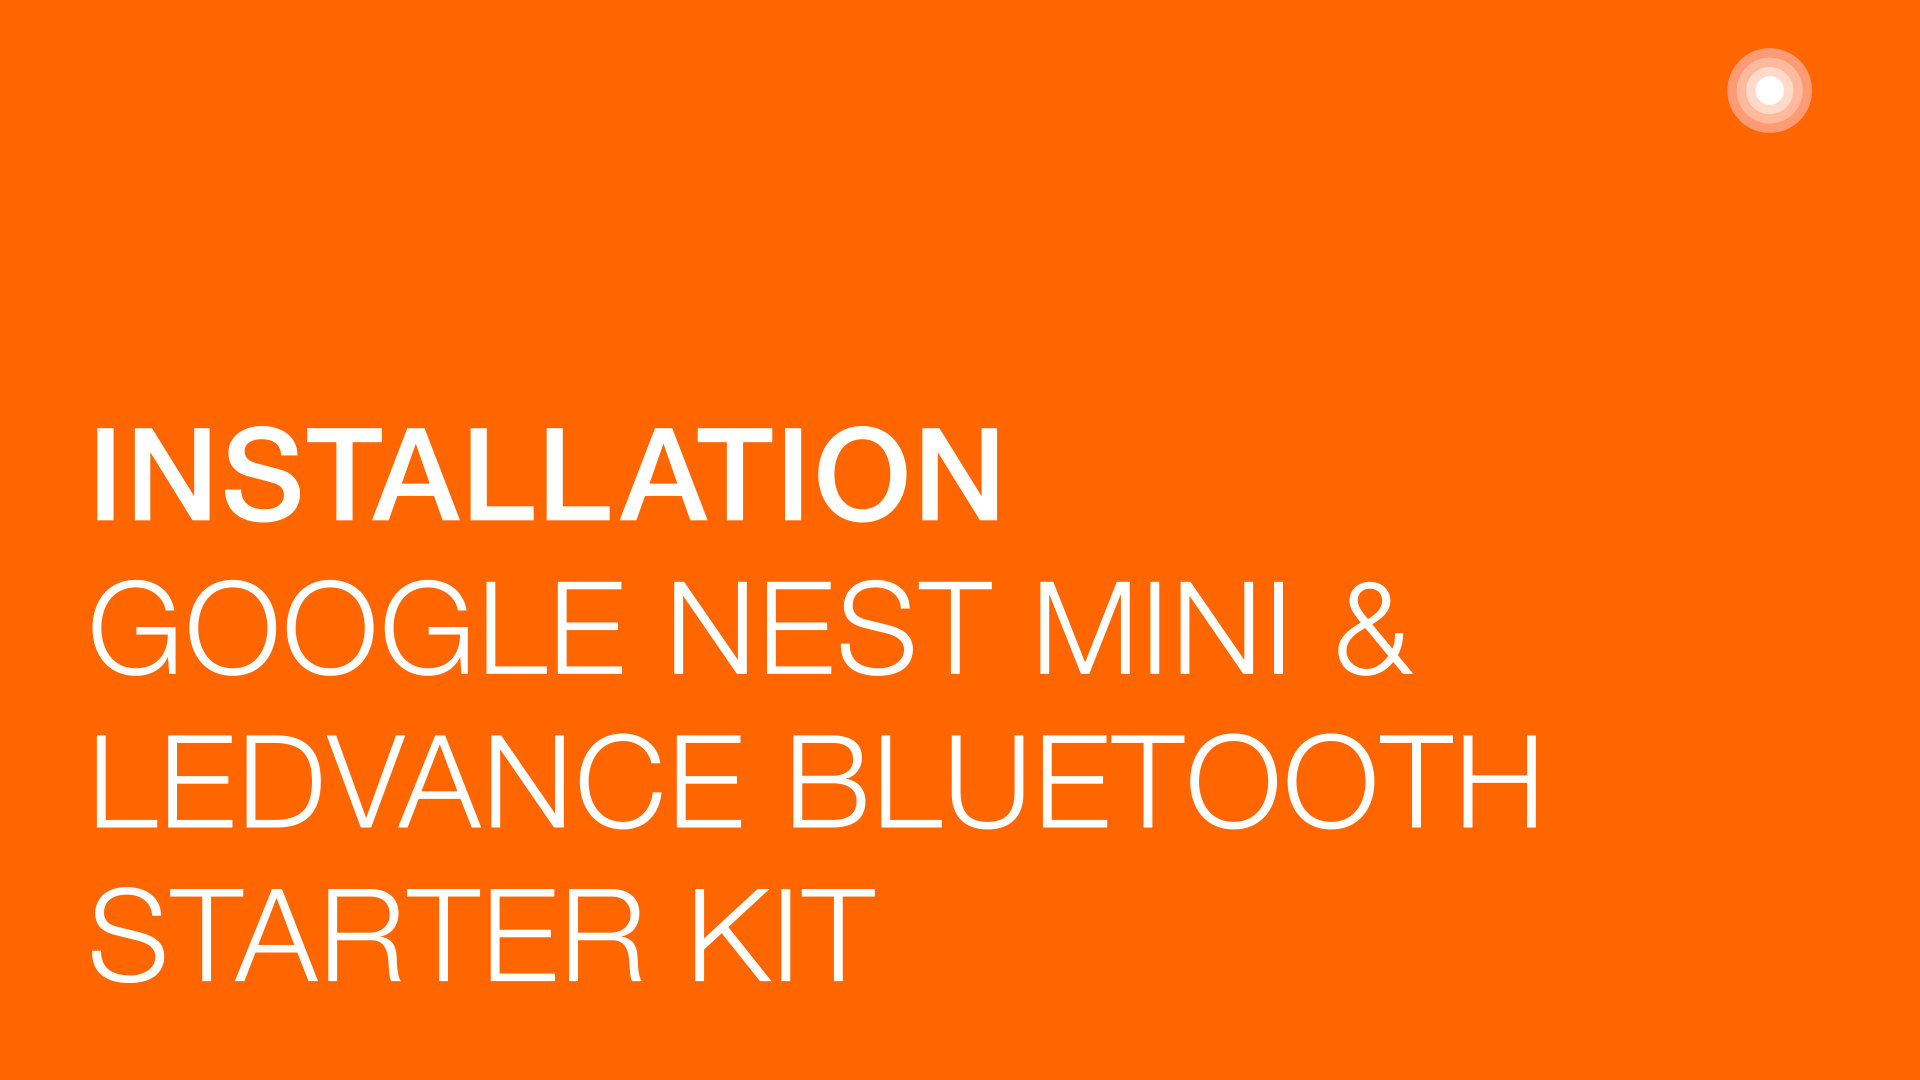 Know-how video for installation Google Nest Mini and LEDVANCE Bluetooth Starter Kit